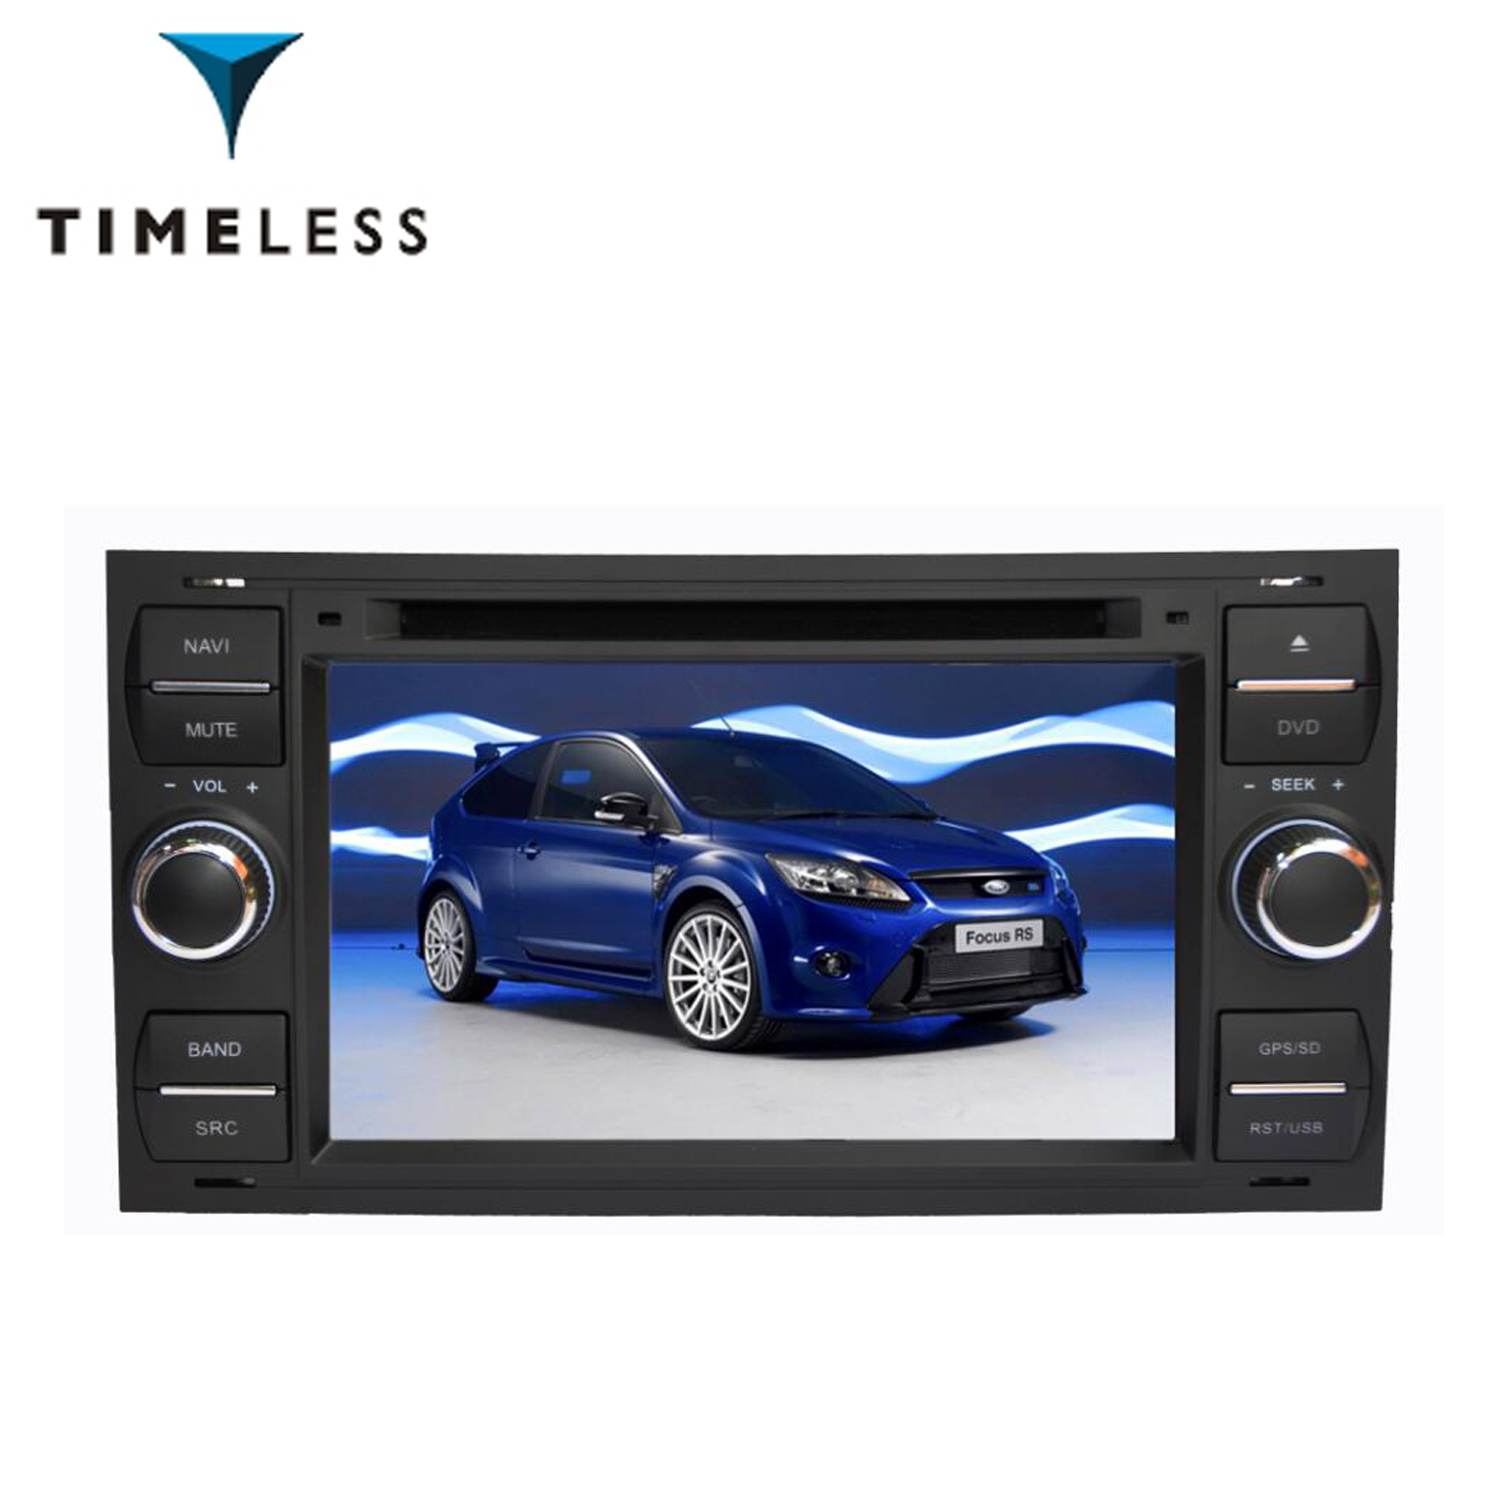 China Android 71 S190 Platform 2 Din Car Audio Video Gps Dvd Player Old For Ford Focus Mondeo With Wifi Tid Q140